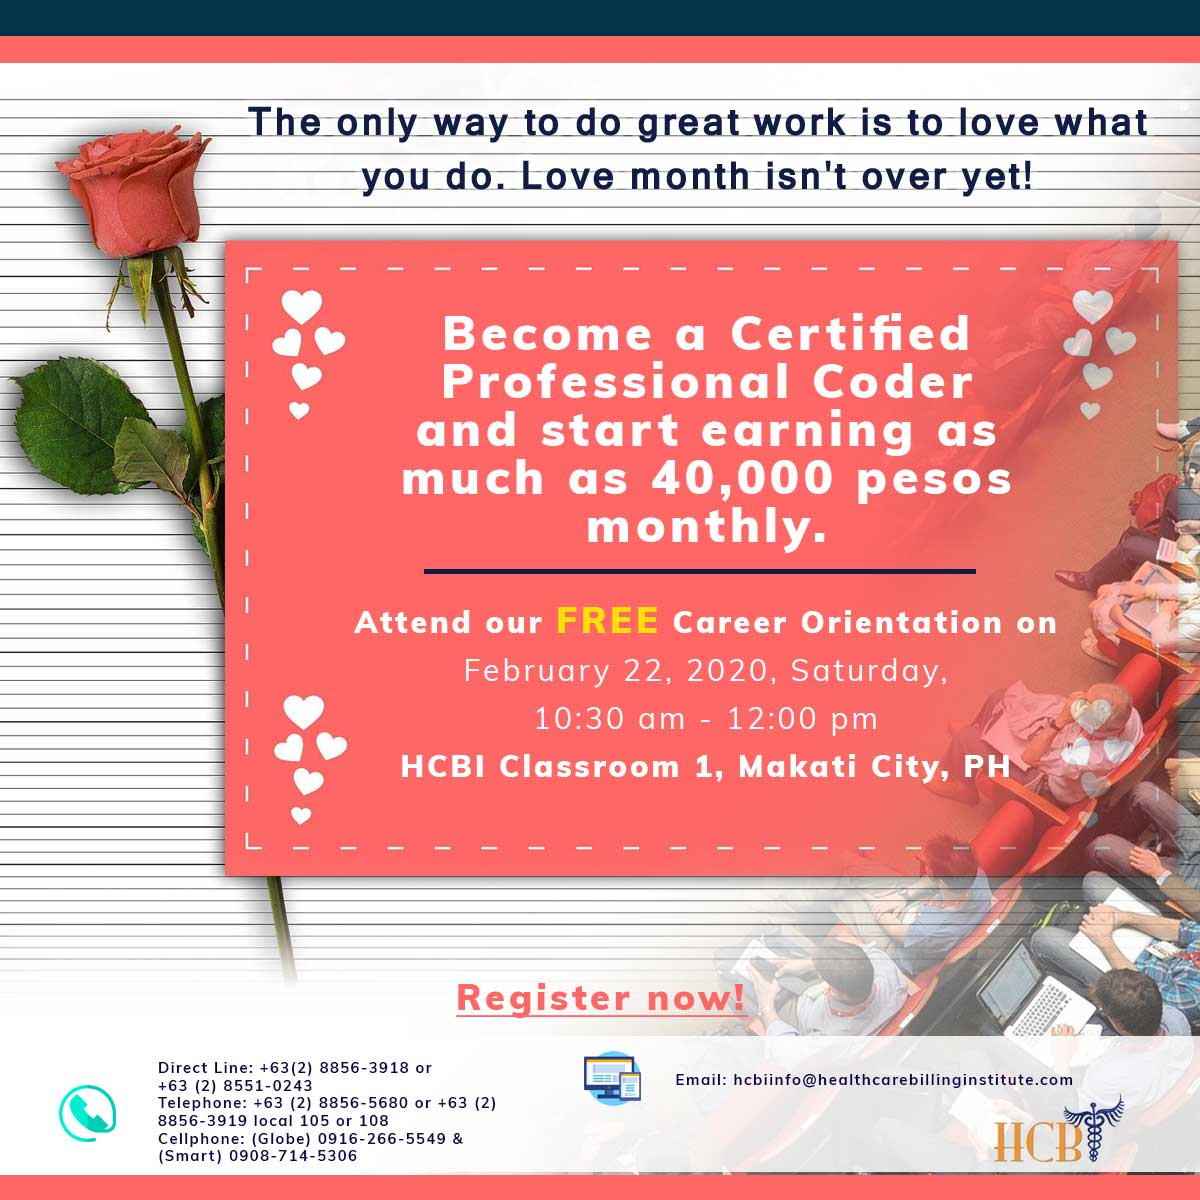 HCBI-ONLINE-Certified-Professional-Training-Course-and-Certification_2.jpg, hcbi